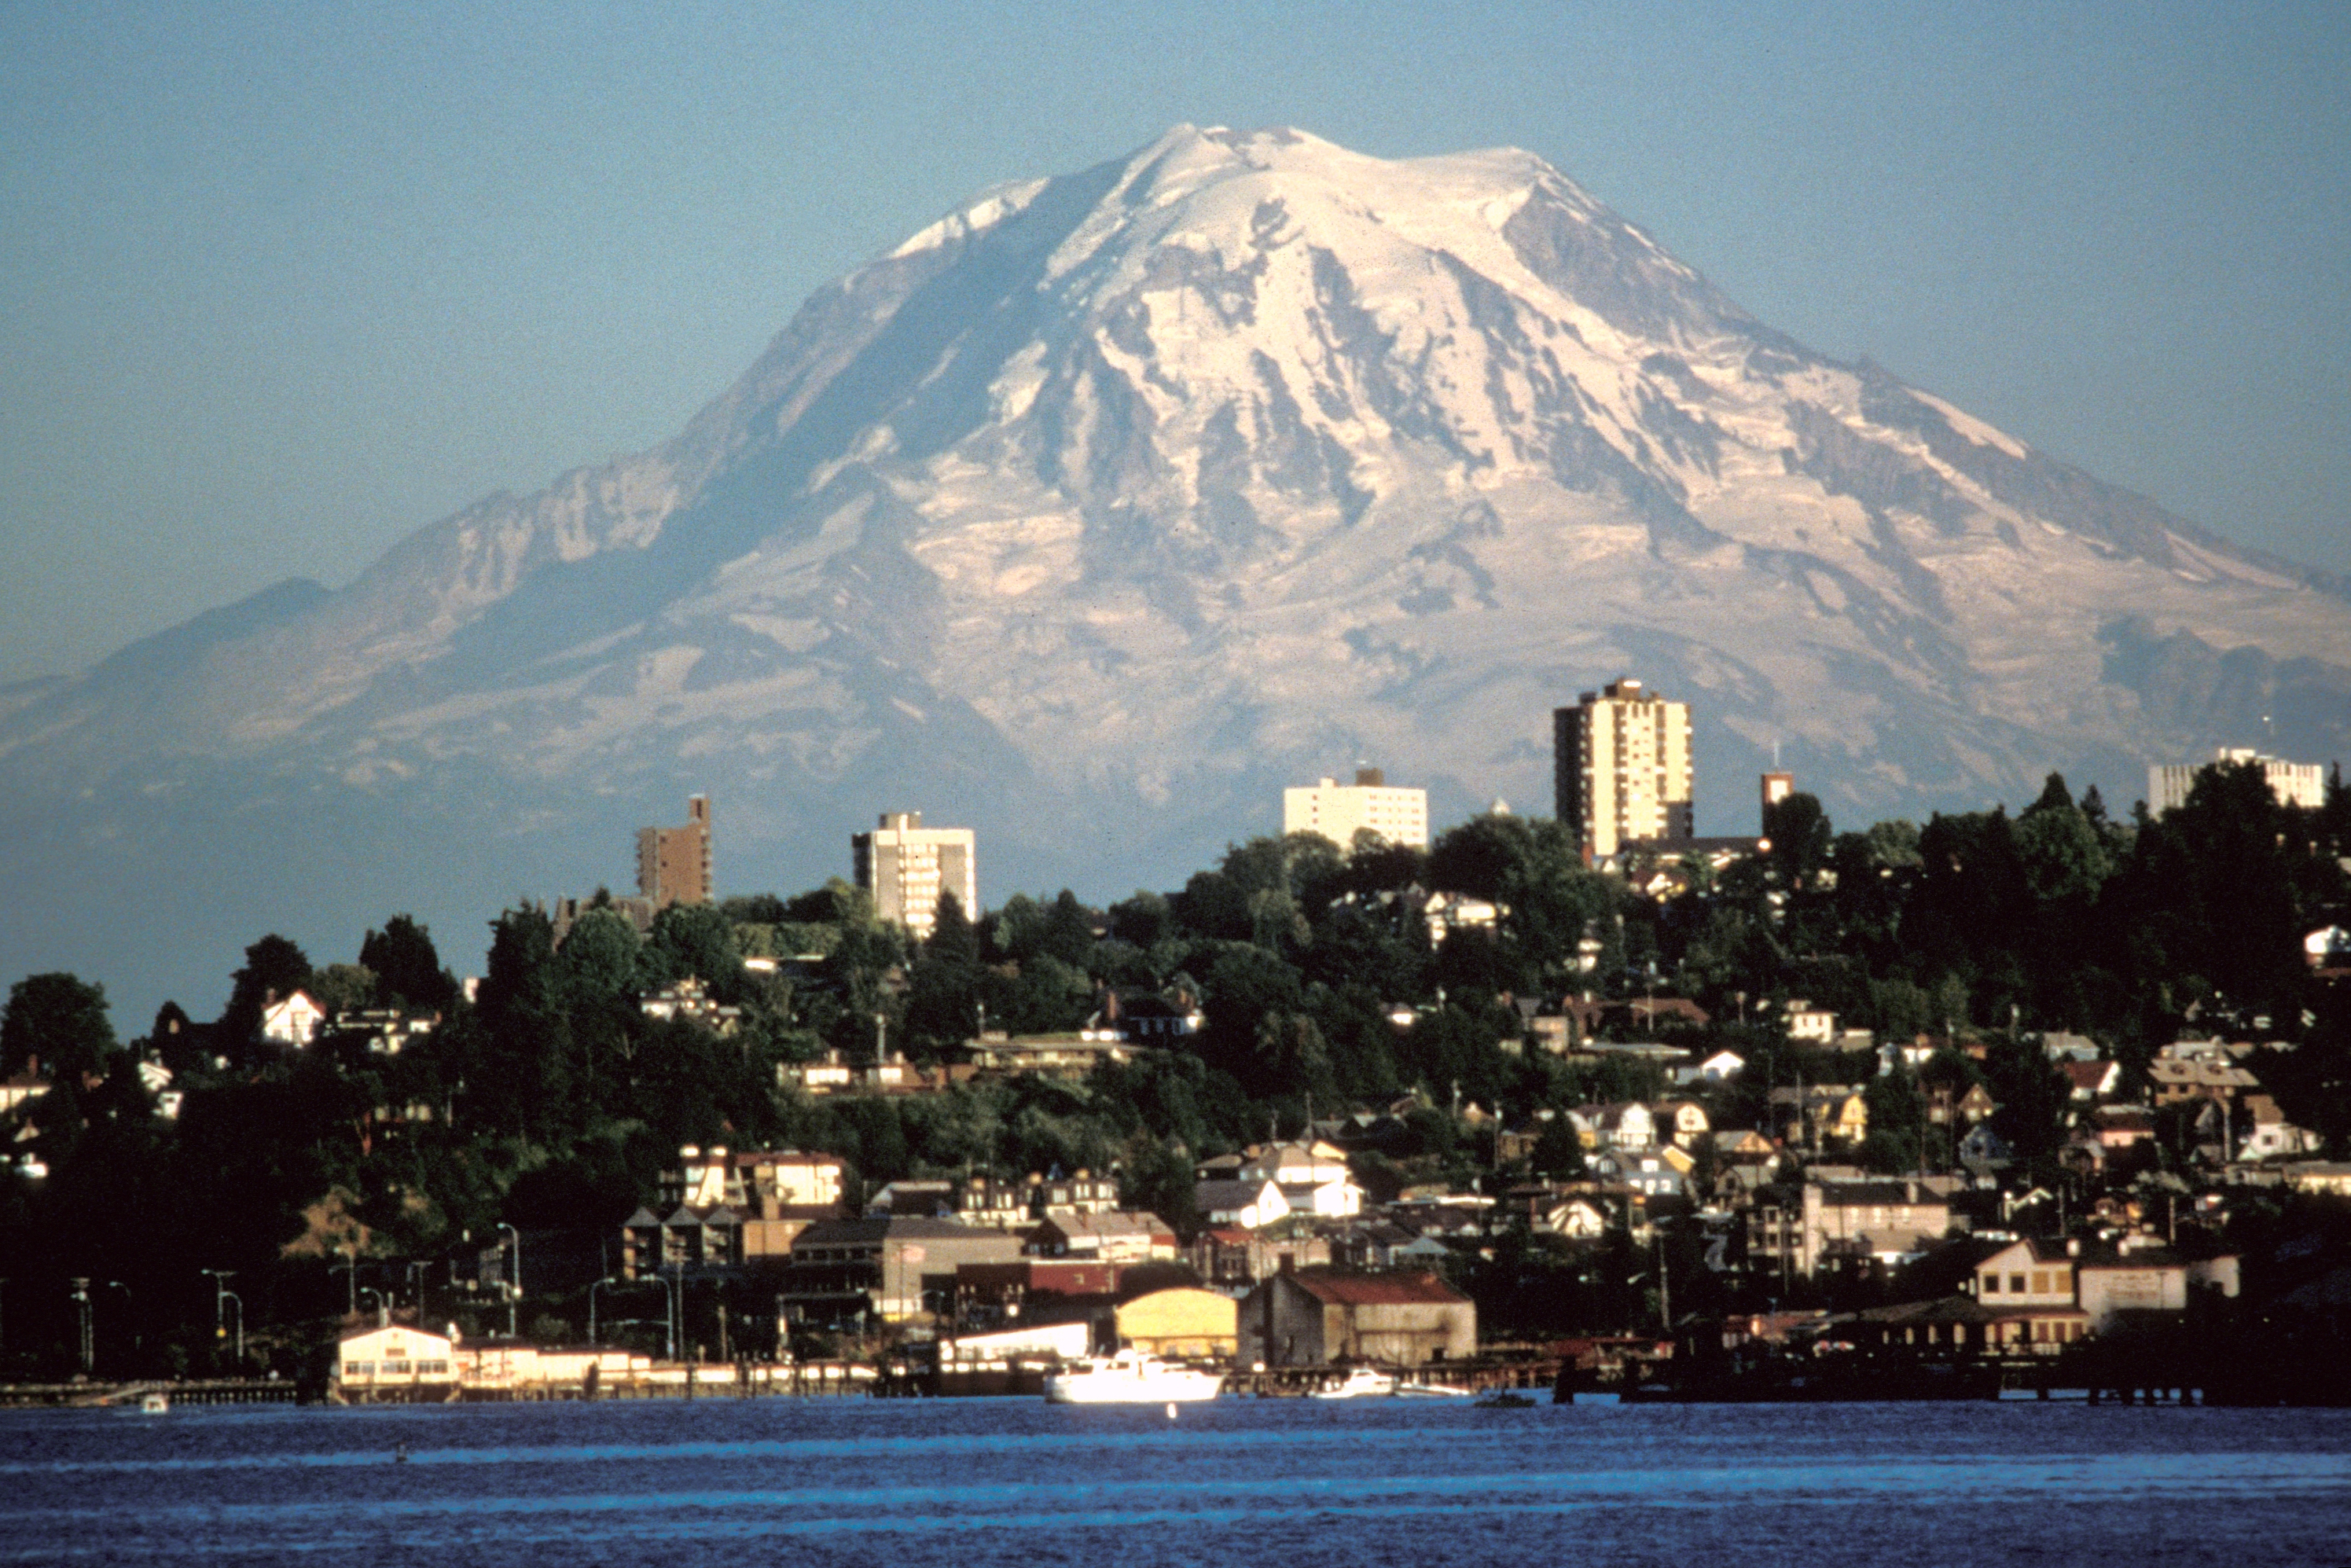 Viewed from the northwest (Tacoma), Liberty Cap is the apparent summit with Mowich Face below. Photo taken on August 20, 1984.